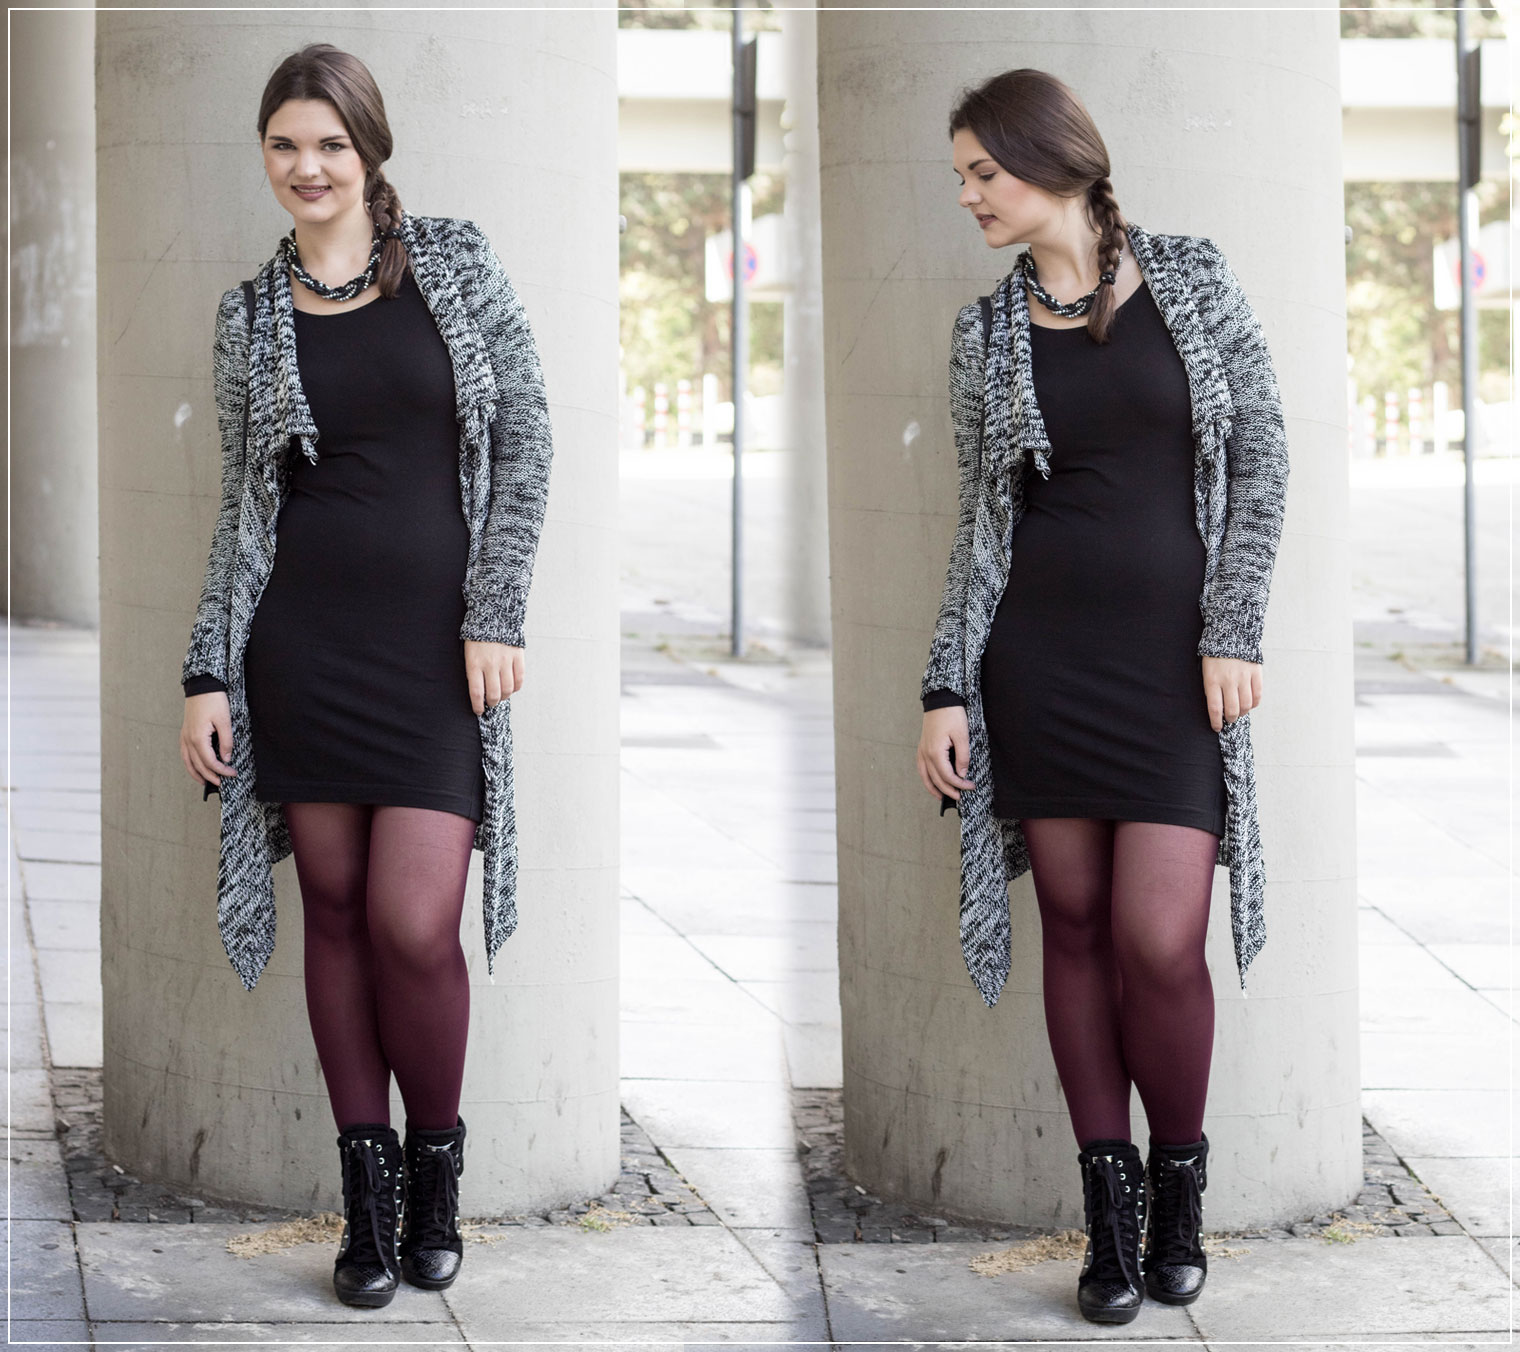 Basic Kleid, Hingucker, Herbststyle, Herbstlook, Outfitinspiration, Fashionblogger, Streetstyle, Herbstoutfit, Fashionblog, Ruhrgebiet